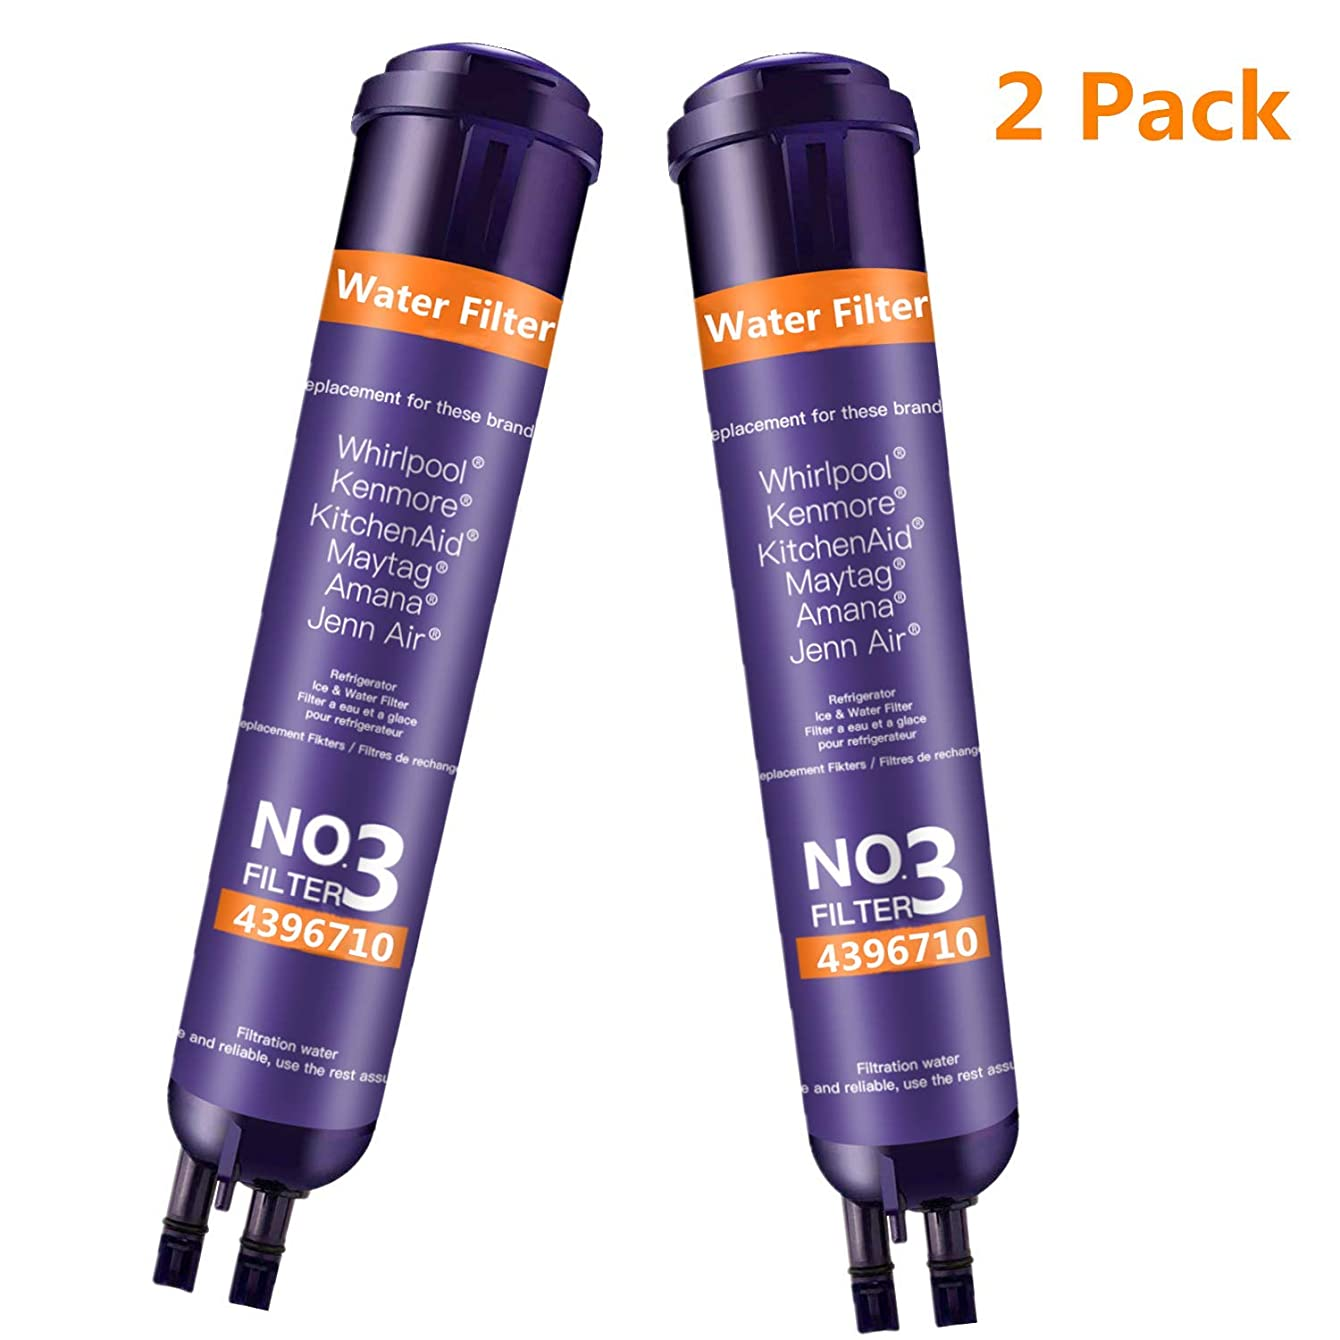 BOYTY Refrigerator Water Filter 9030 Replacement Ken-More 46/9083 9083 46/9030 9030 46/9020 Refrigerator Water Filter Purple(2 Pack)